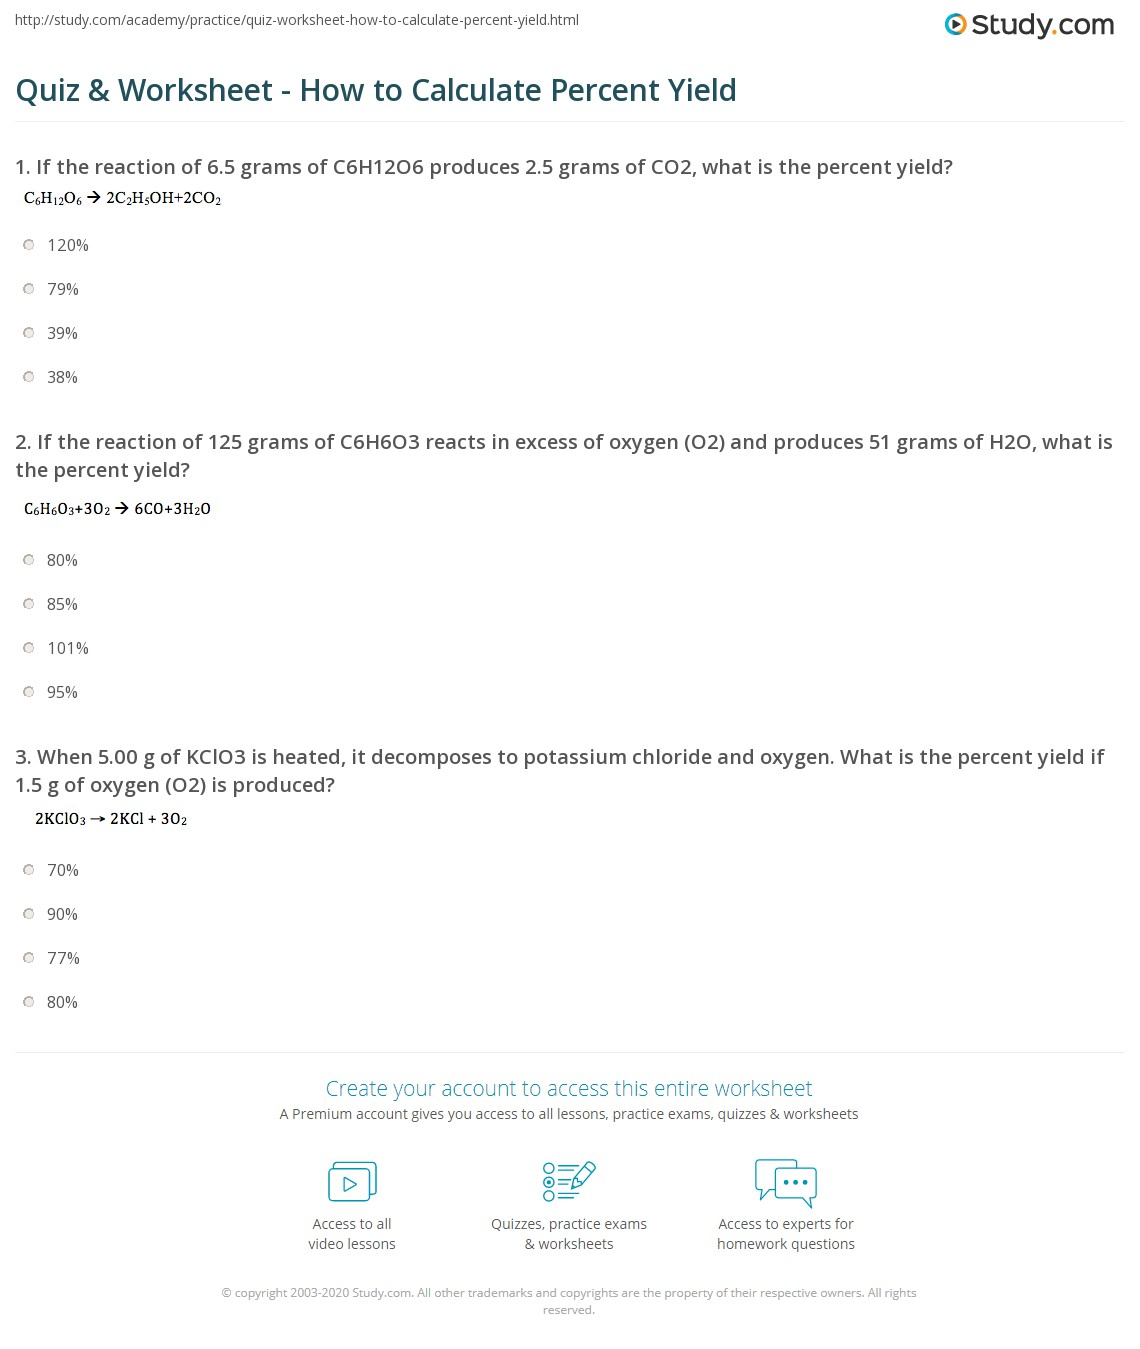 Quiz Worksheet How To Calculate Percent Yield Study Com